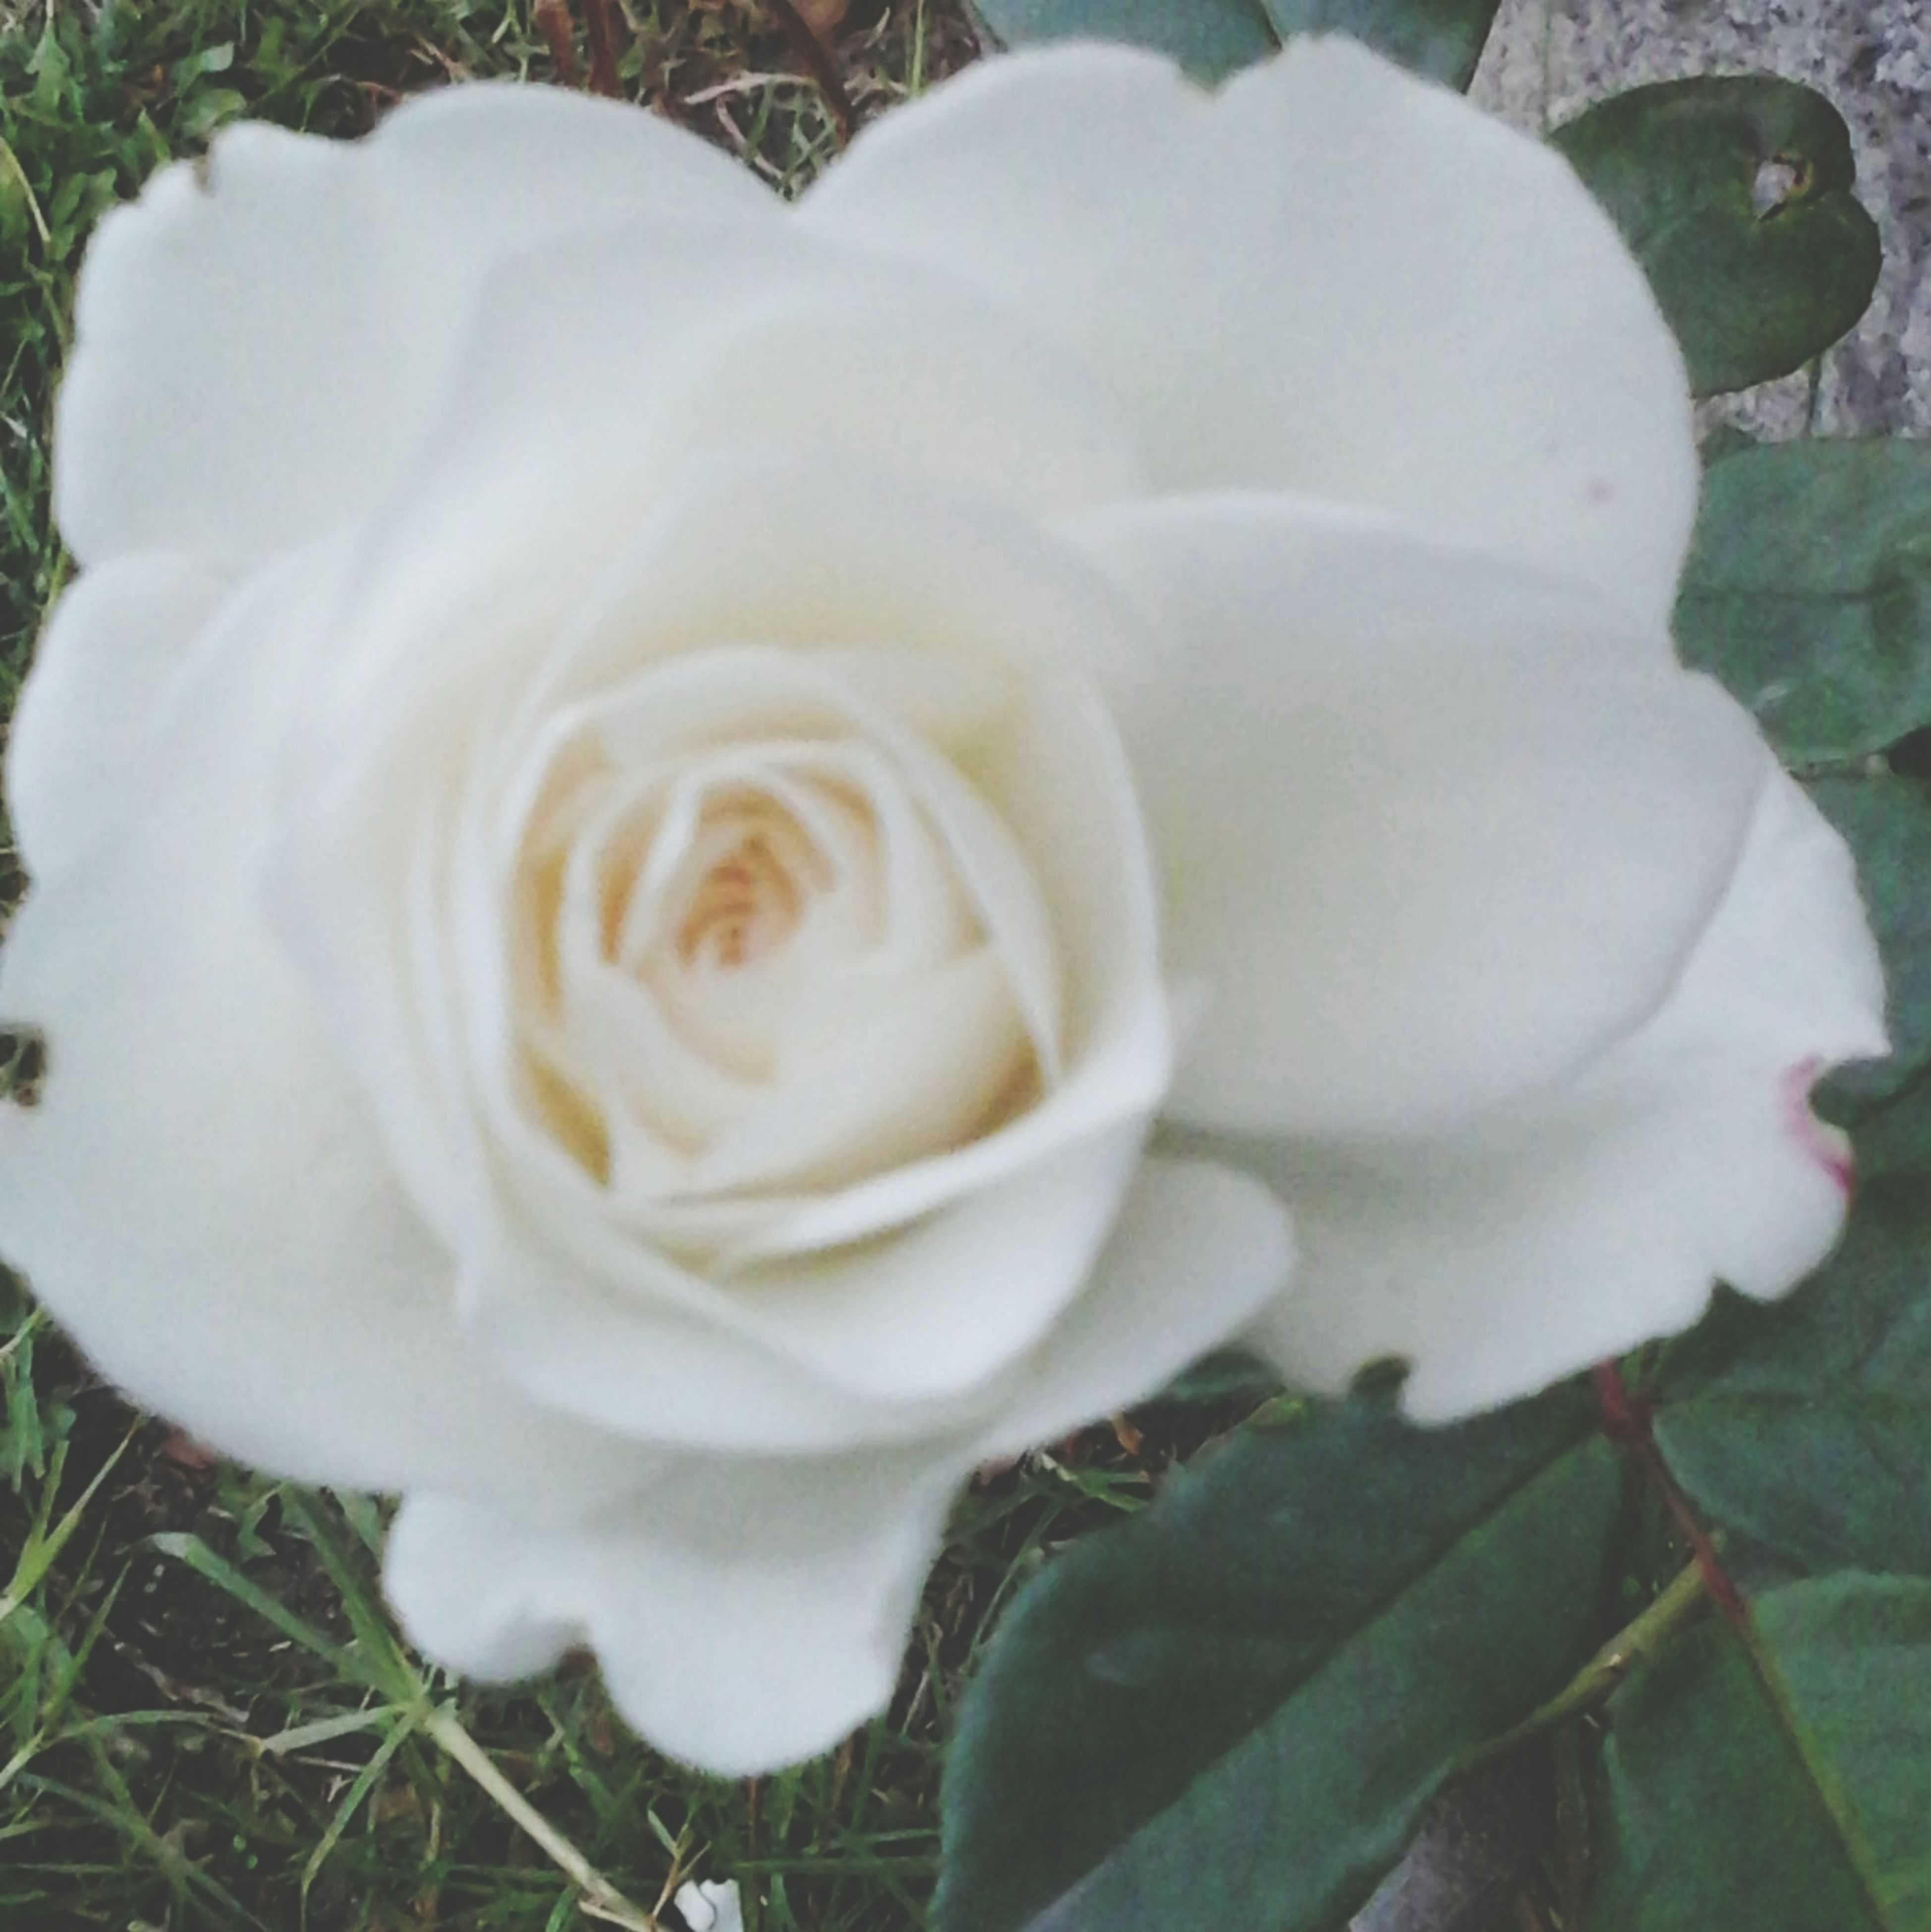 flower, petal, flower head, fragility, rose - flower, freshness, beauty in nature, single flower, growth, close-up, white color, rose, blooming, nature, high angle view, plant, in bloom, focus on foreground, single rose, no people